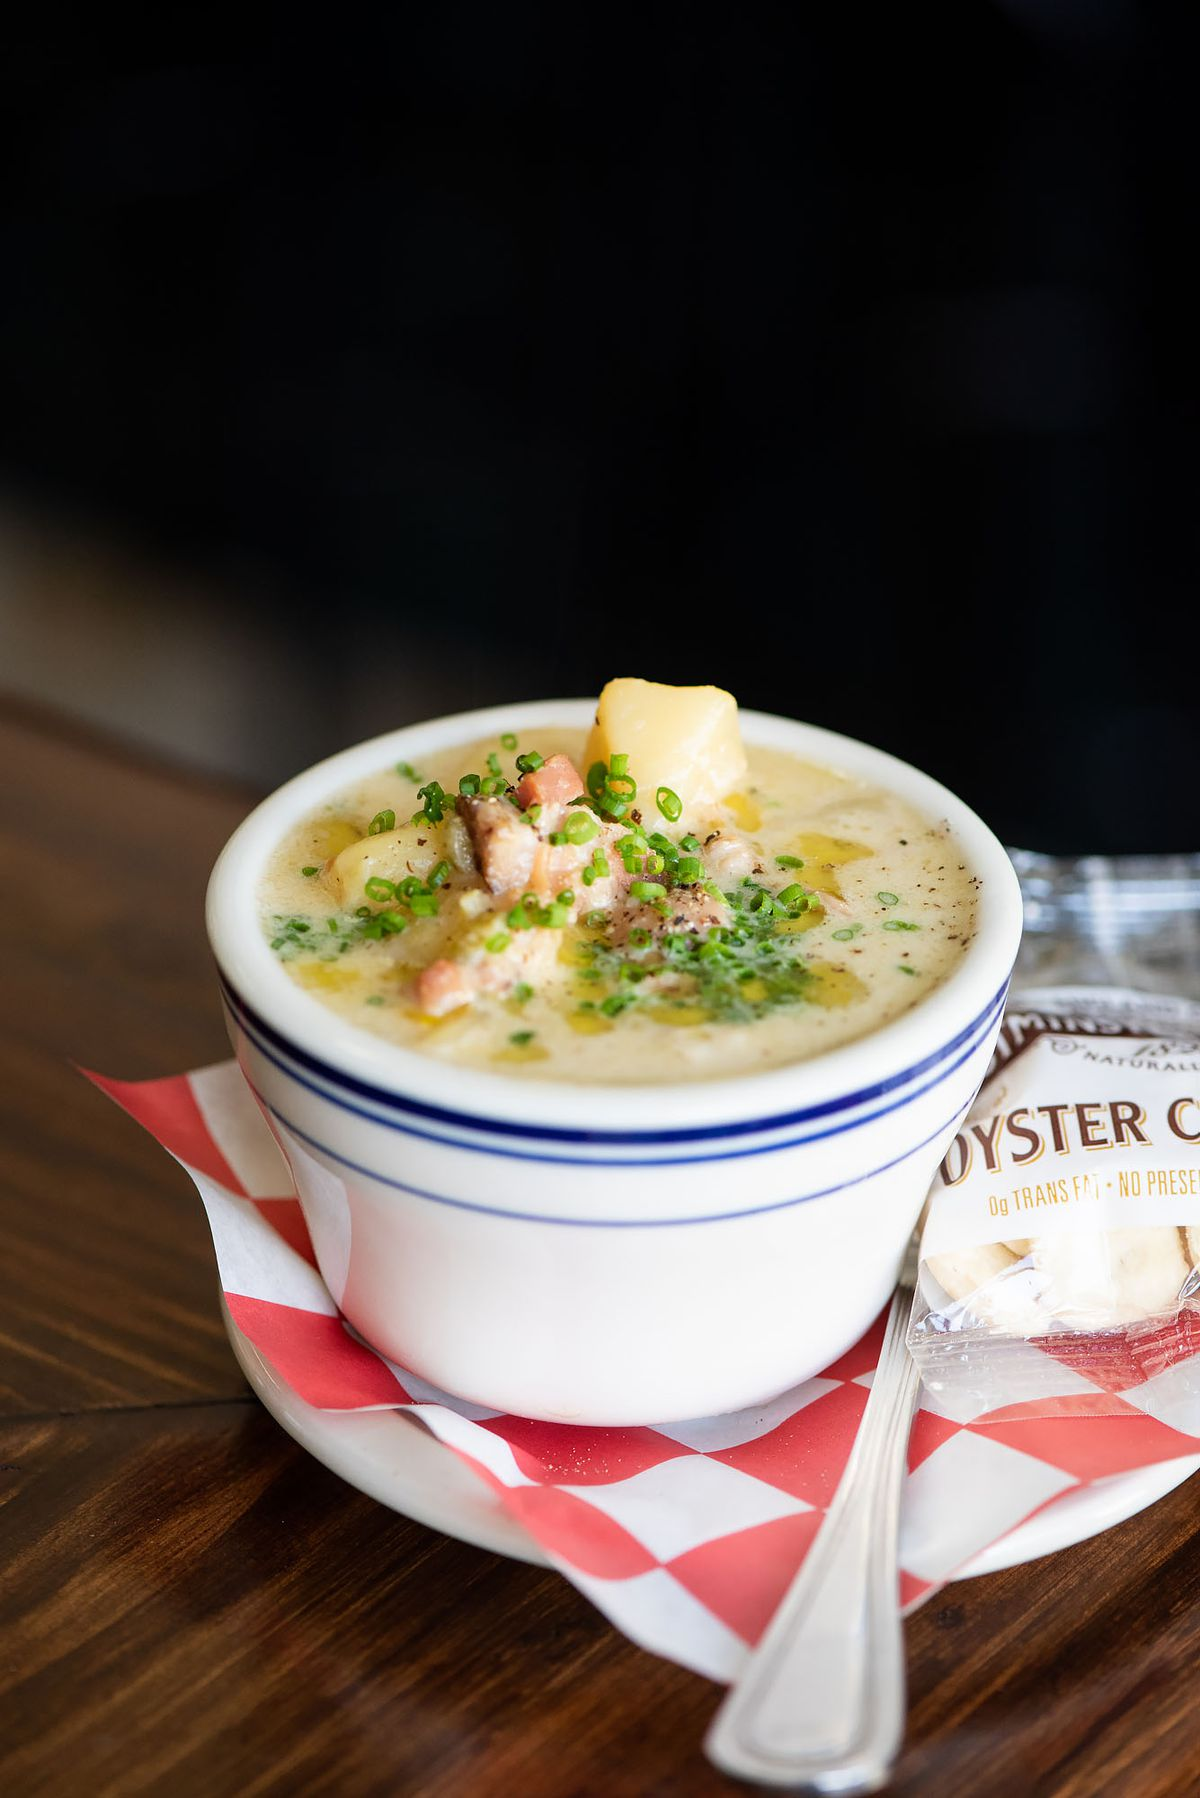 Chowder in a small cup.